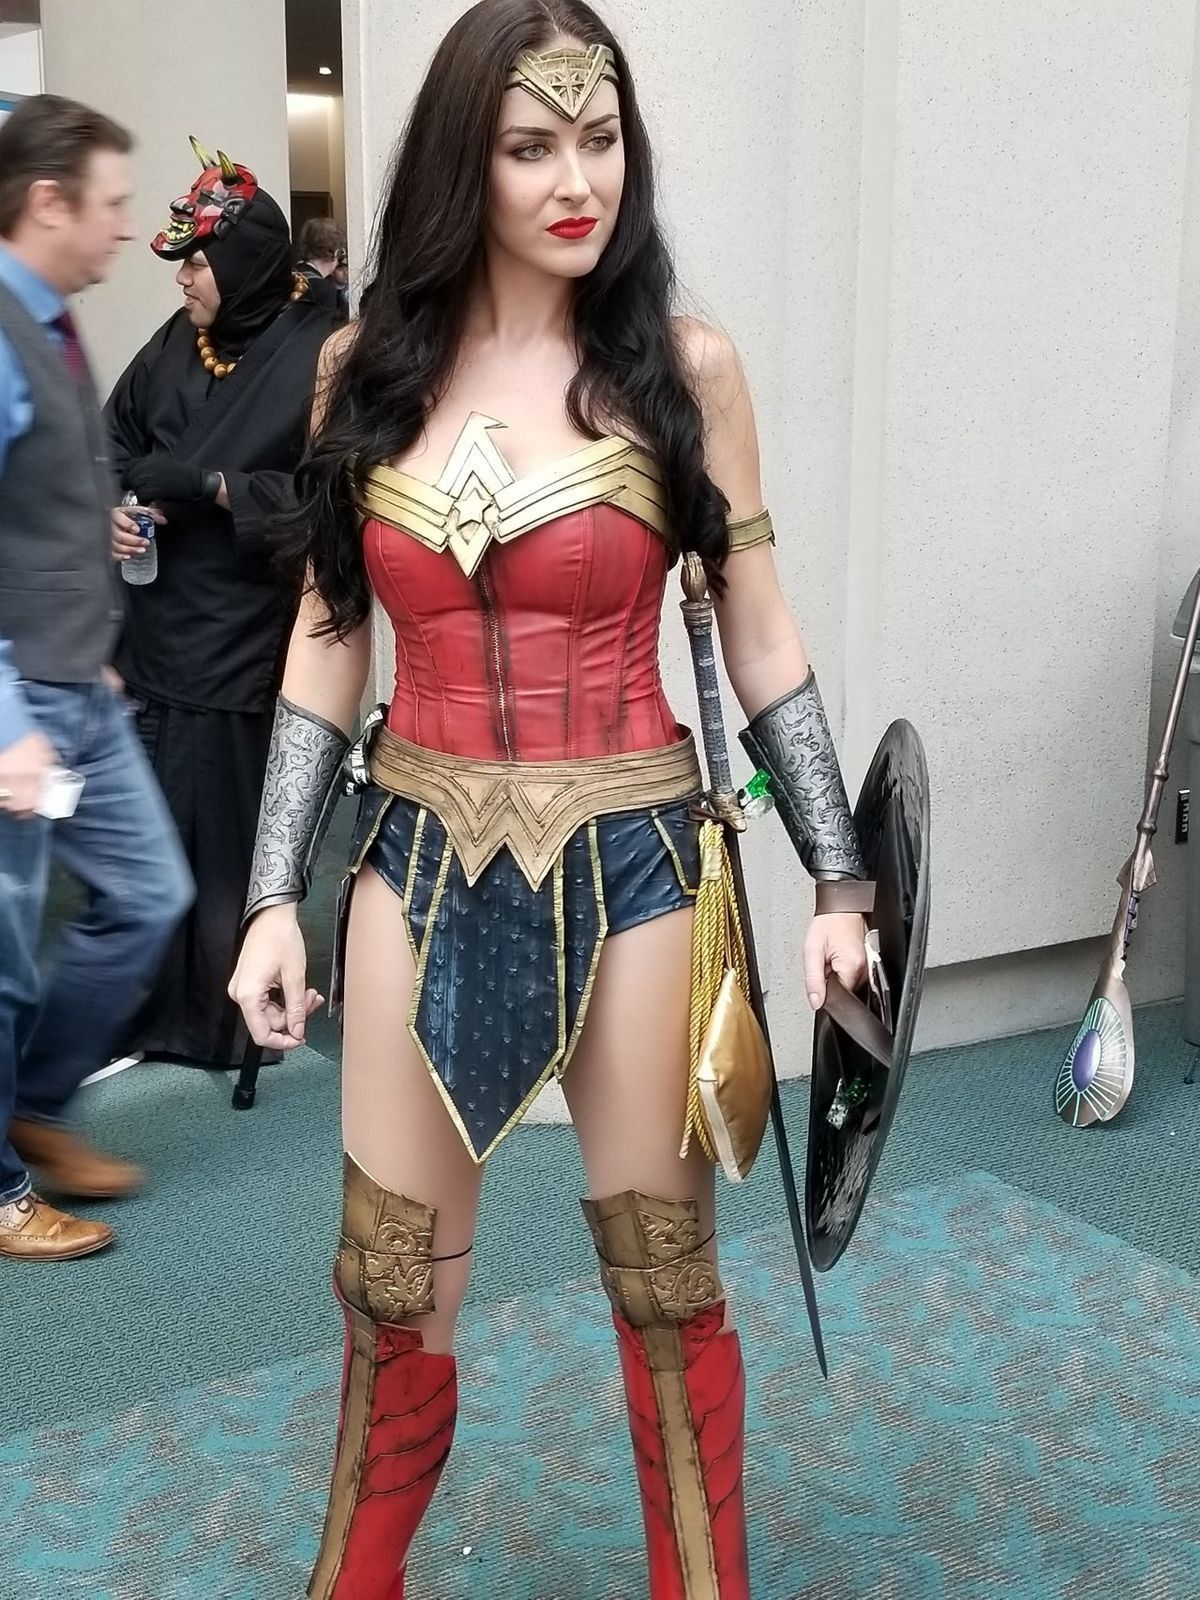 40 Of The Hottest Female Cosplay Costumes From The 2018 San Diego